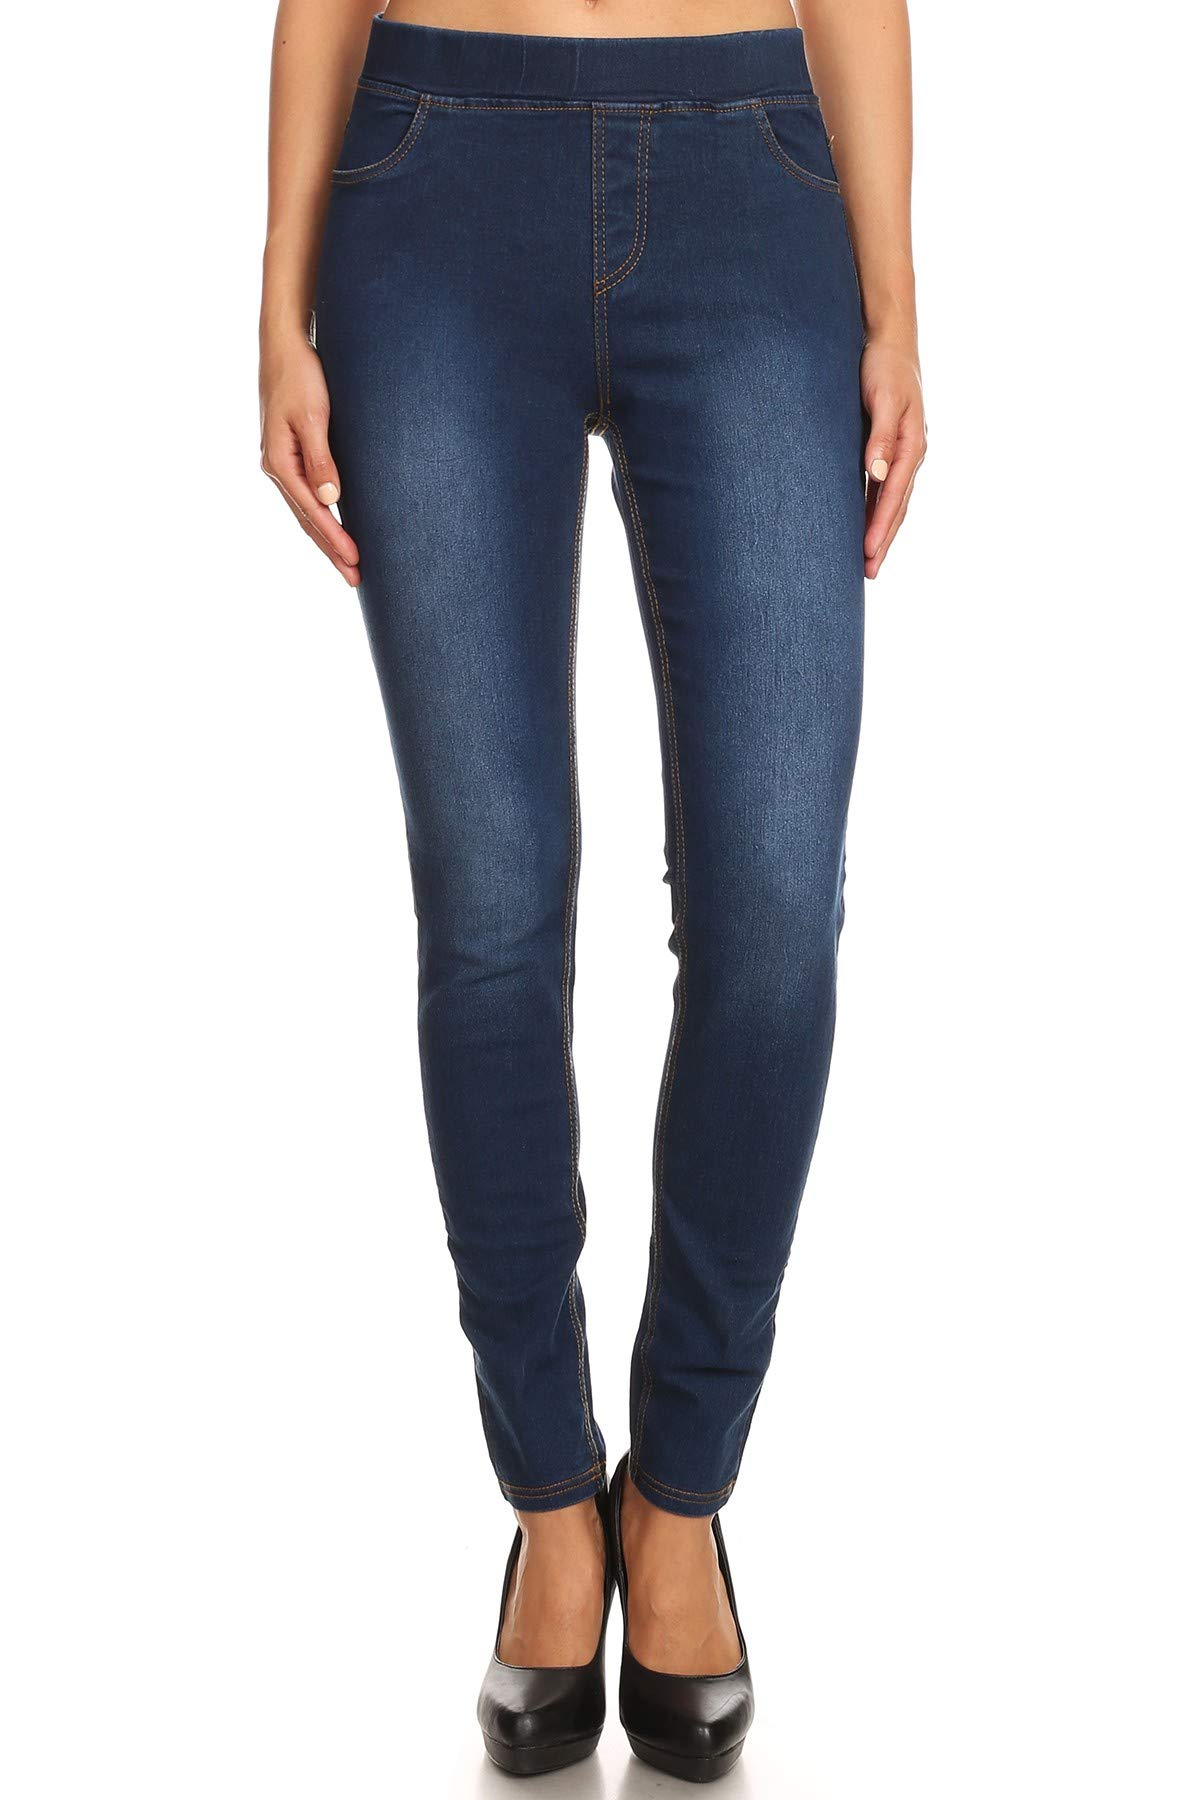 Women's High Waisted Stretchy Pull-On Skinny Denim Jeans Jegging Pant (Large, Dark Blue)